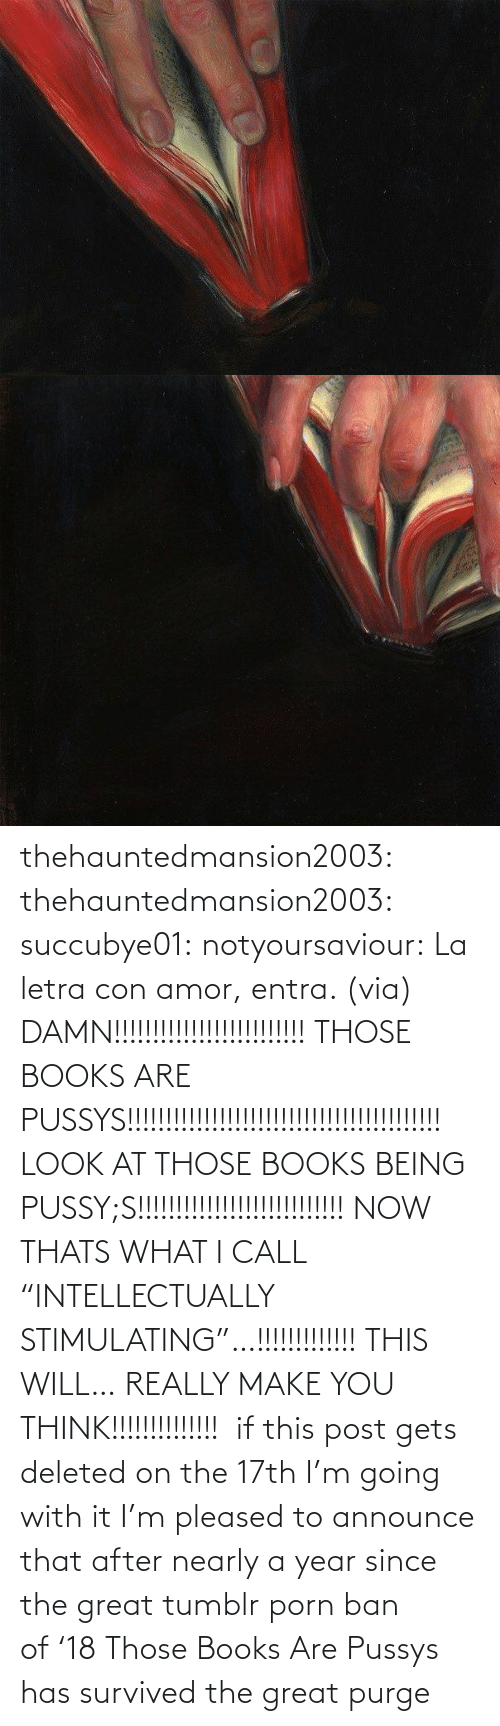 "facebook.com: thehauntedmansion2003: thehauntedmansion2003:  succubye01:  notyoursaviour:  La letra con amor, entra. (via)  DAMN!!!!!!!!!!!!!!!!!!!!!!!!! THOSE BOOKS ARE PUSSYS!!!!!!!!!!!!!!!!!!!!!!!!!!!!!!!!!!!!!!!!! LOOK AT THOSE BOOKS BEING PUSSY;S!!!!!!!!!!!!!!!!!!!!!!!!!!! NOW THATS WHAT I CALL ""INTELLECTUALLY STIMULATING""…!!!!!!!!!!!!! THIS WILL… REALLY MAKE YOU THINK!!!!!!!!!!!!!!   if this post gets deleted on the 17th I'm going with it  I'm pleased to announce that after nearly a year since the great tumblr porn ban of '18 Those Books Are Pussys has survived the great purge"